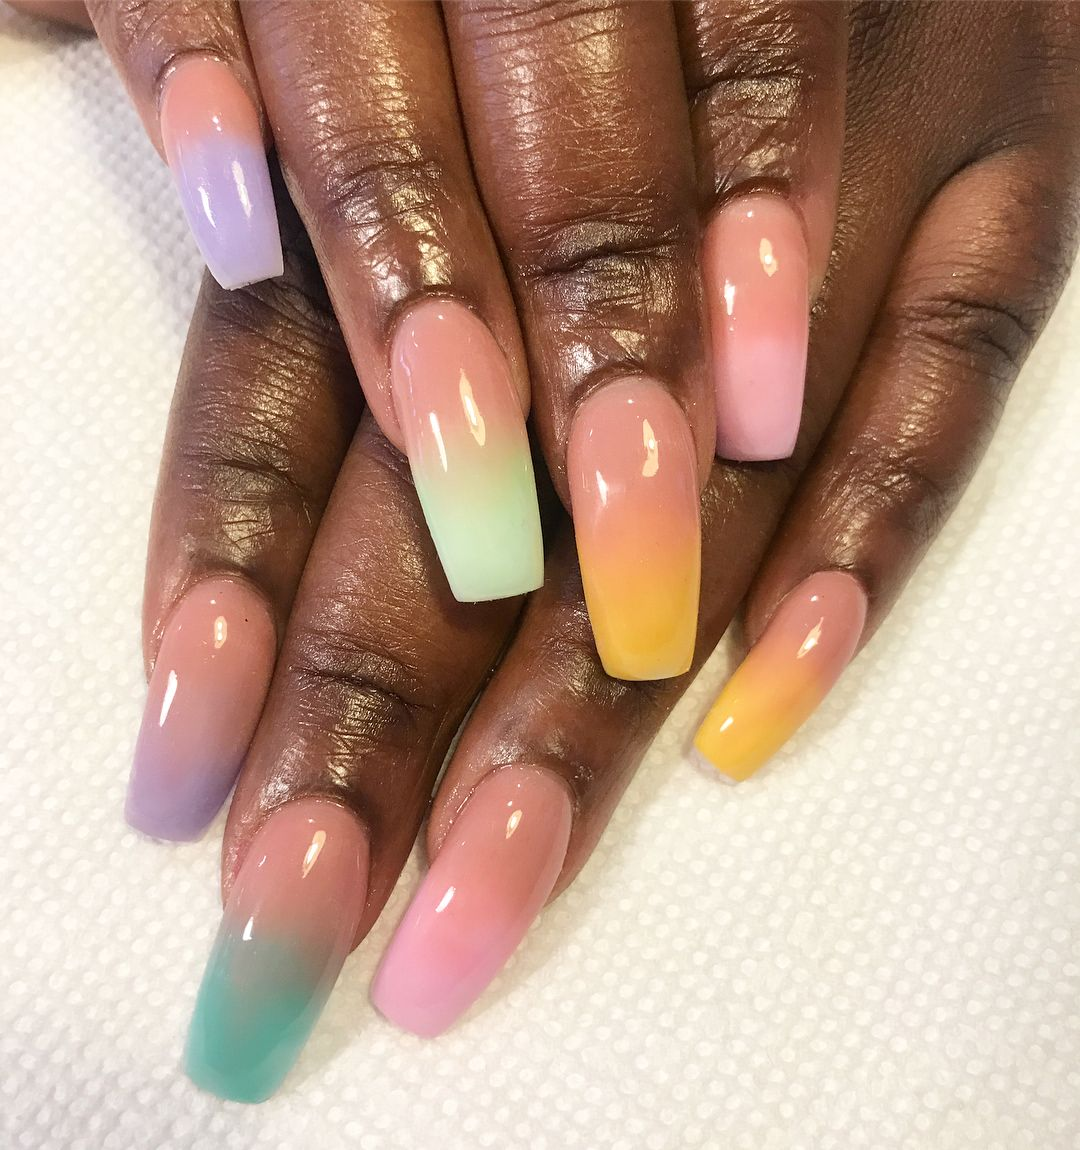 Long Acrylics With Pink And Pastel Ombre Blackgirlnails Ombre Ombre Acrylic Nails Girls Nails Pink Ombre Nails